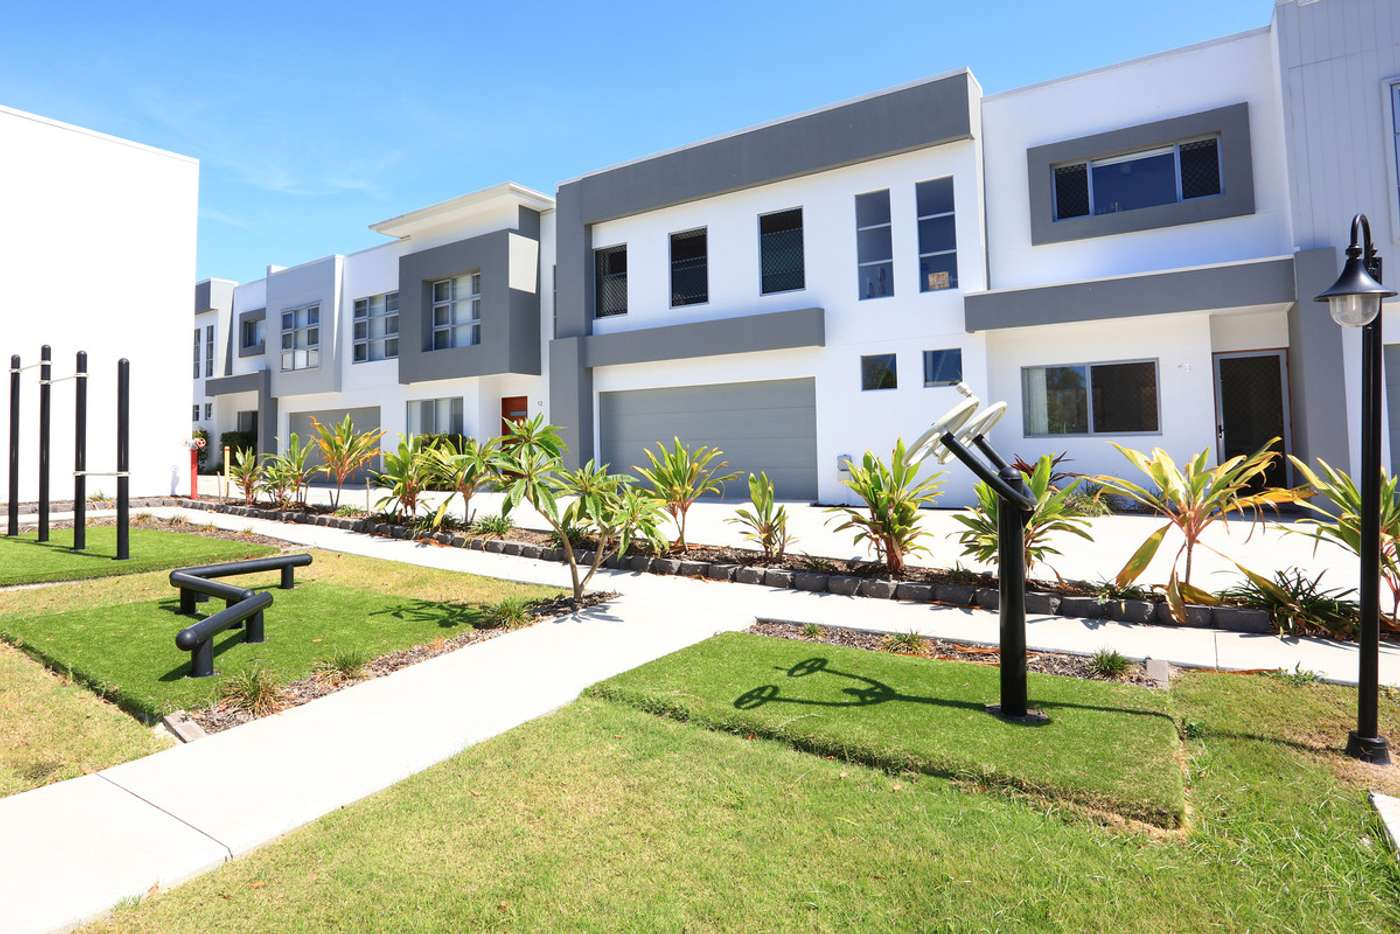 Main view of Homely townhouse listing, 13/20 Careel Close, Helensvale QLD 4212